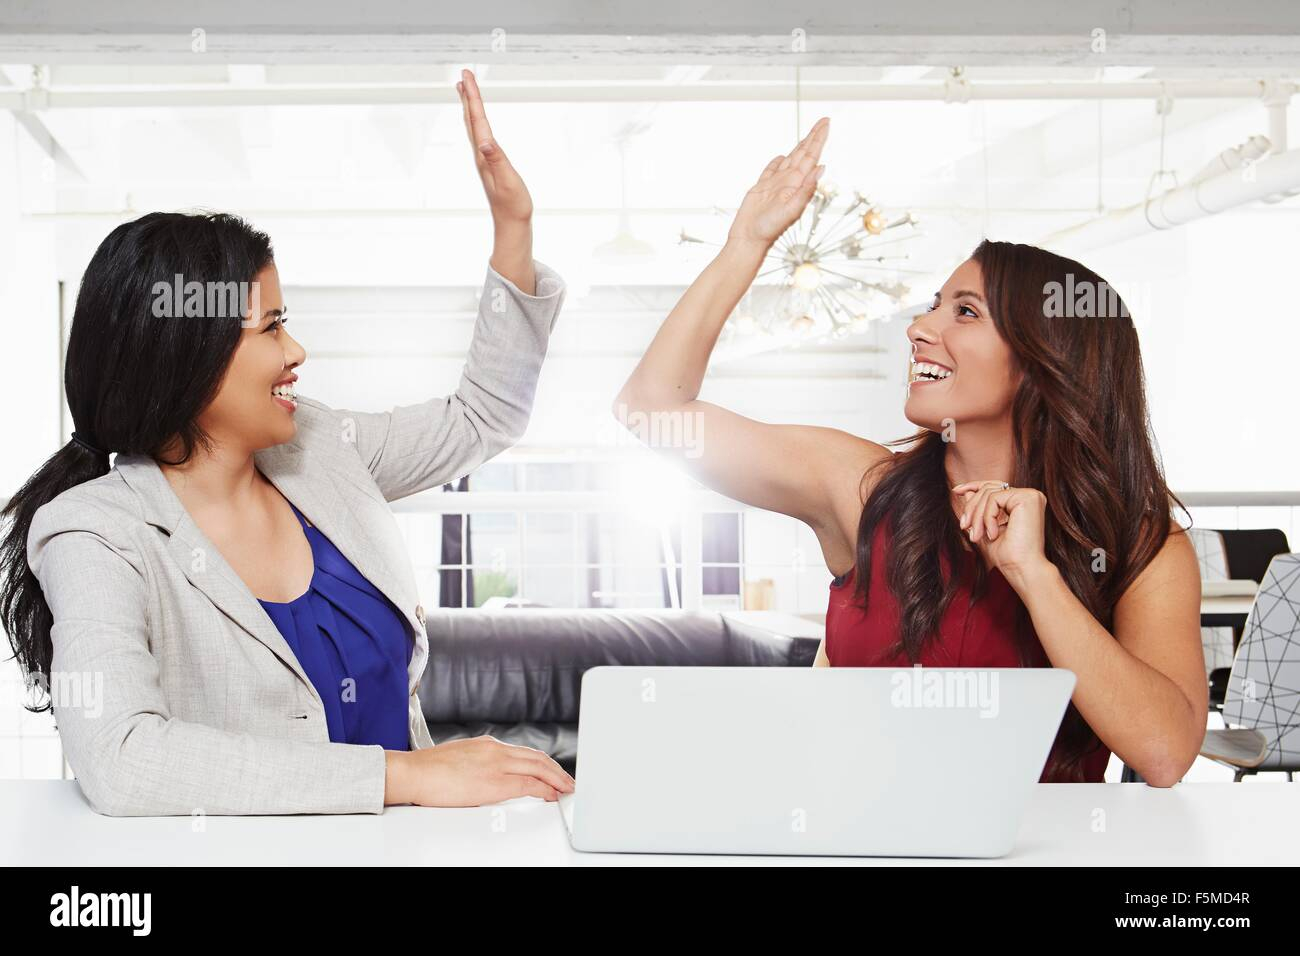 Two businesswomen sitting at desk, giving high five - Stock Image